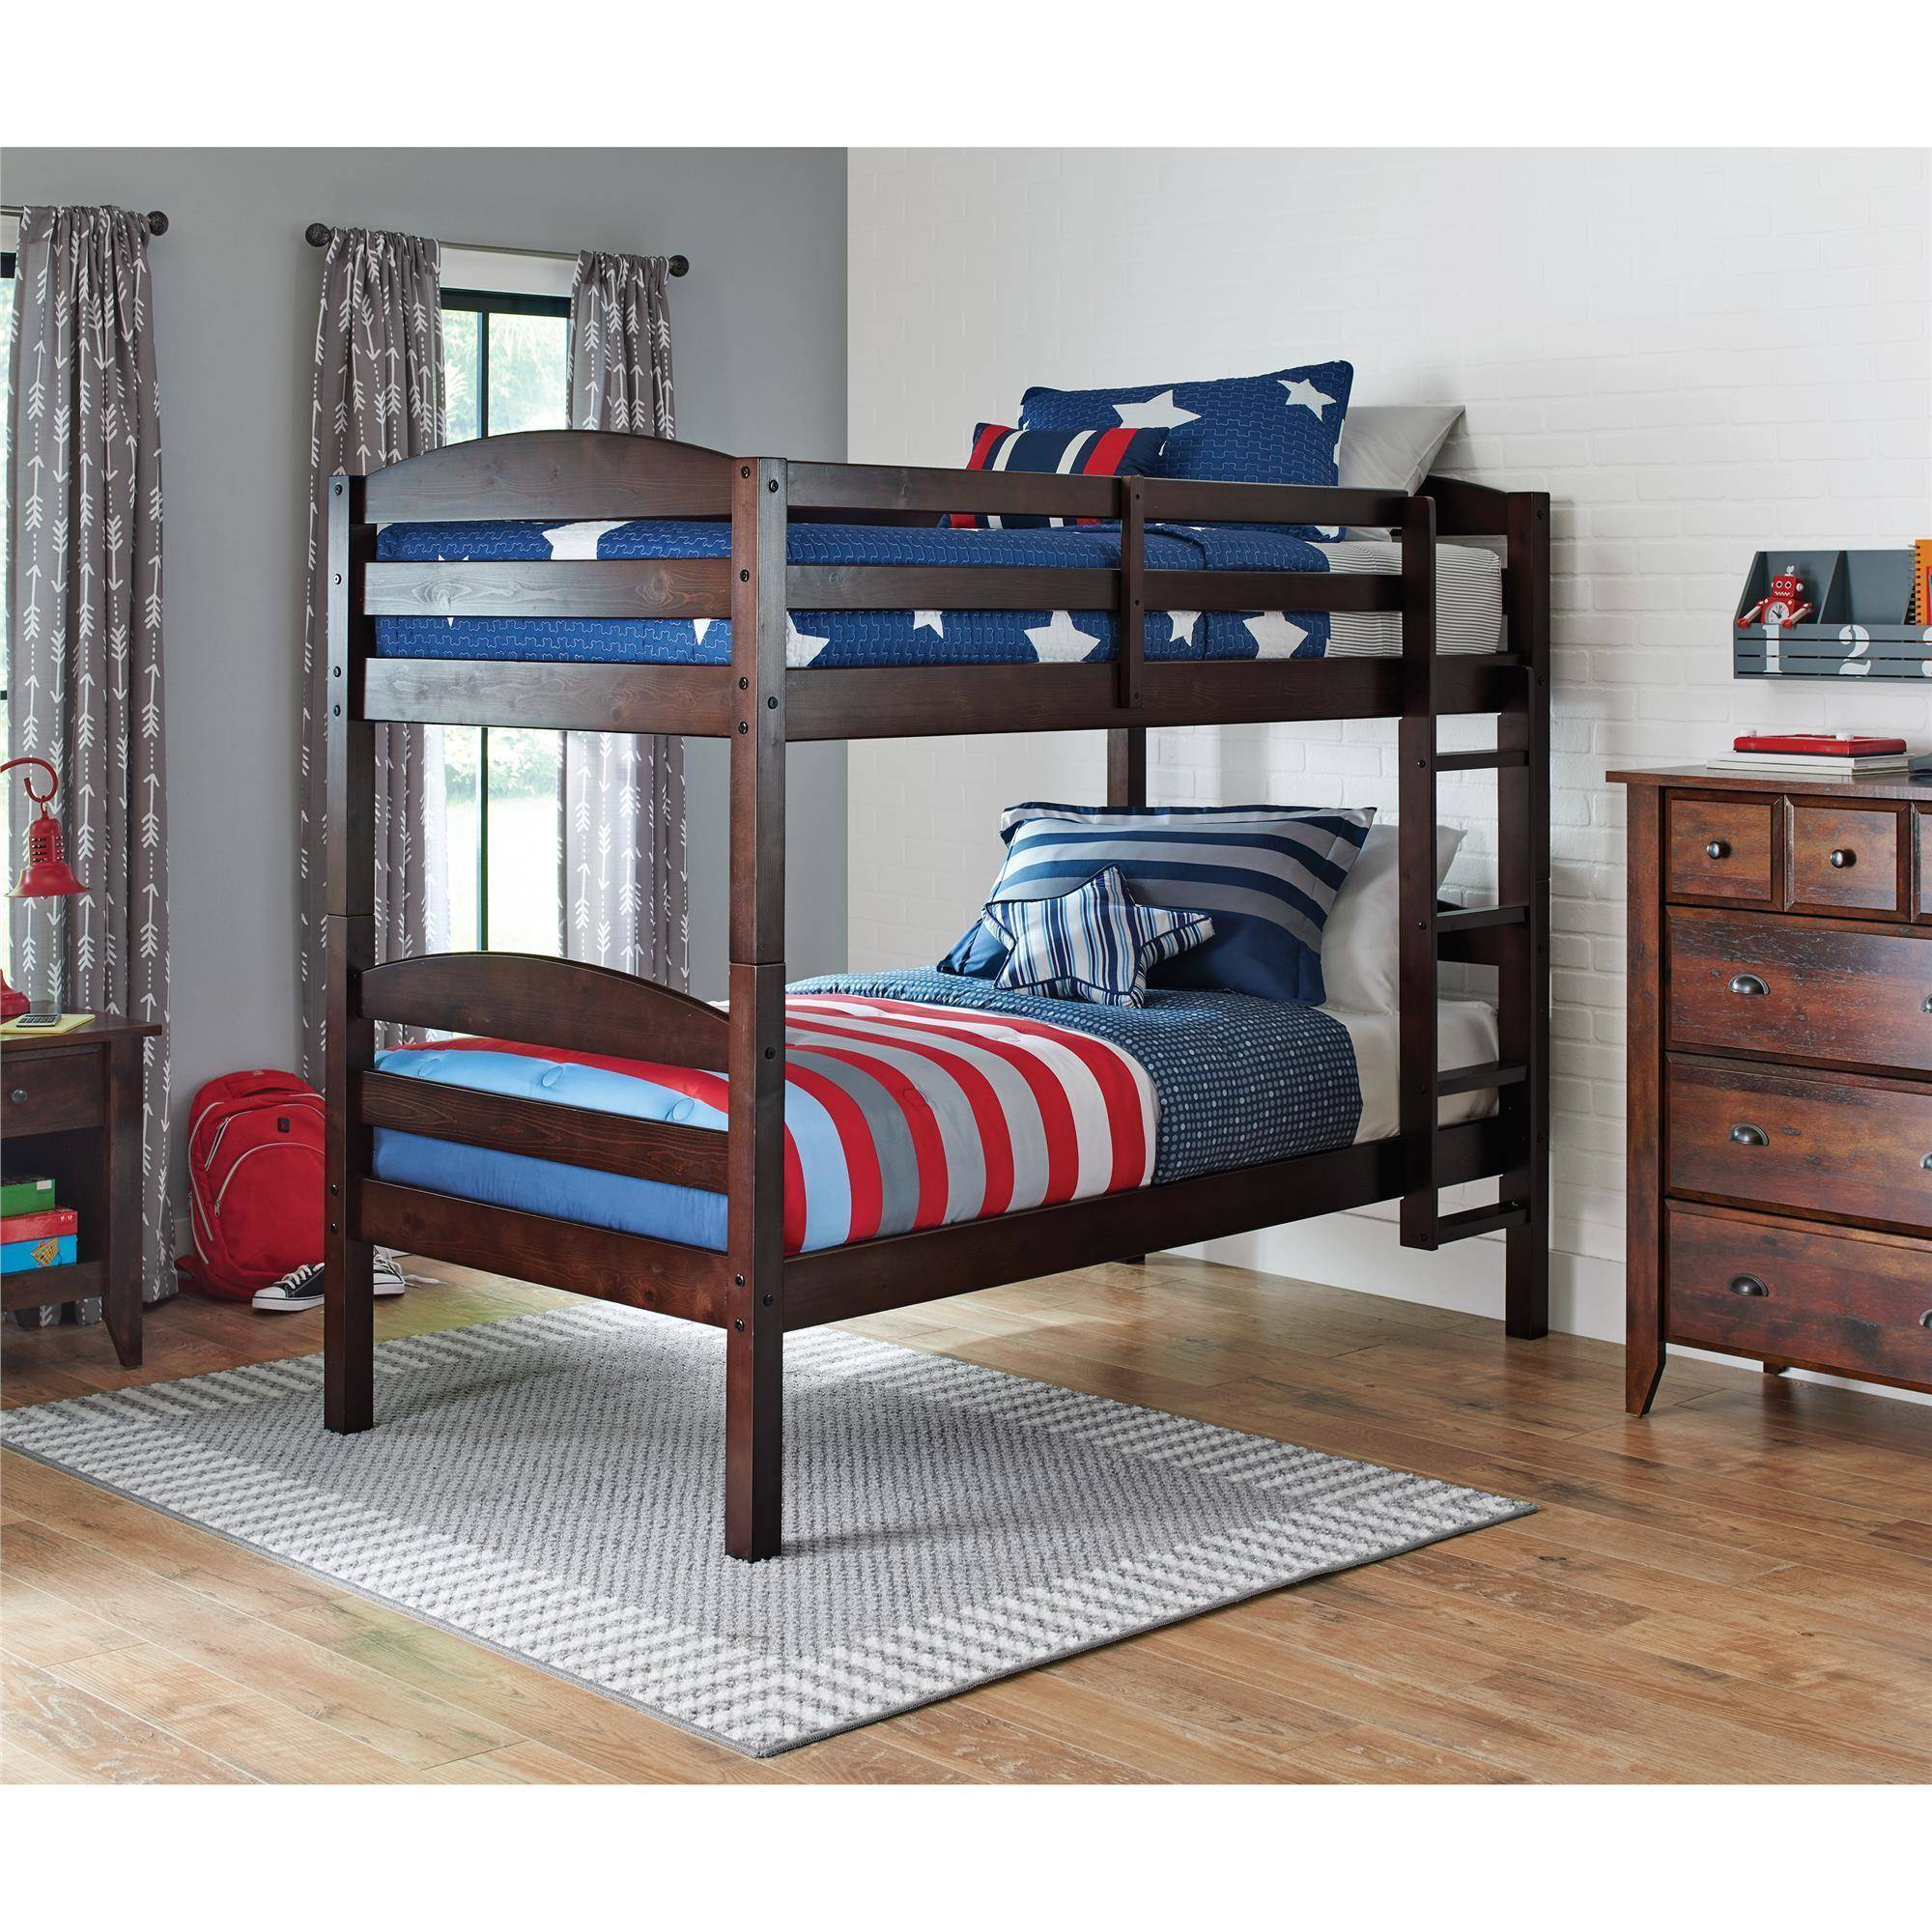 Better Homes and Gardens Leighton Twin Over Twin Wood Bunk Bed, Multiple